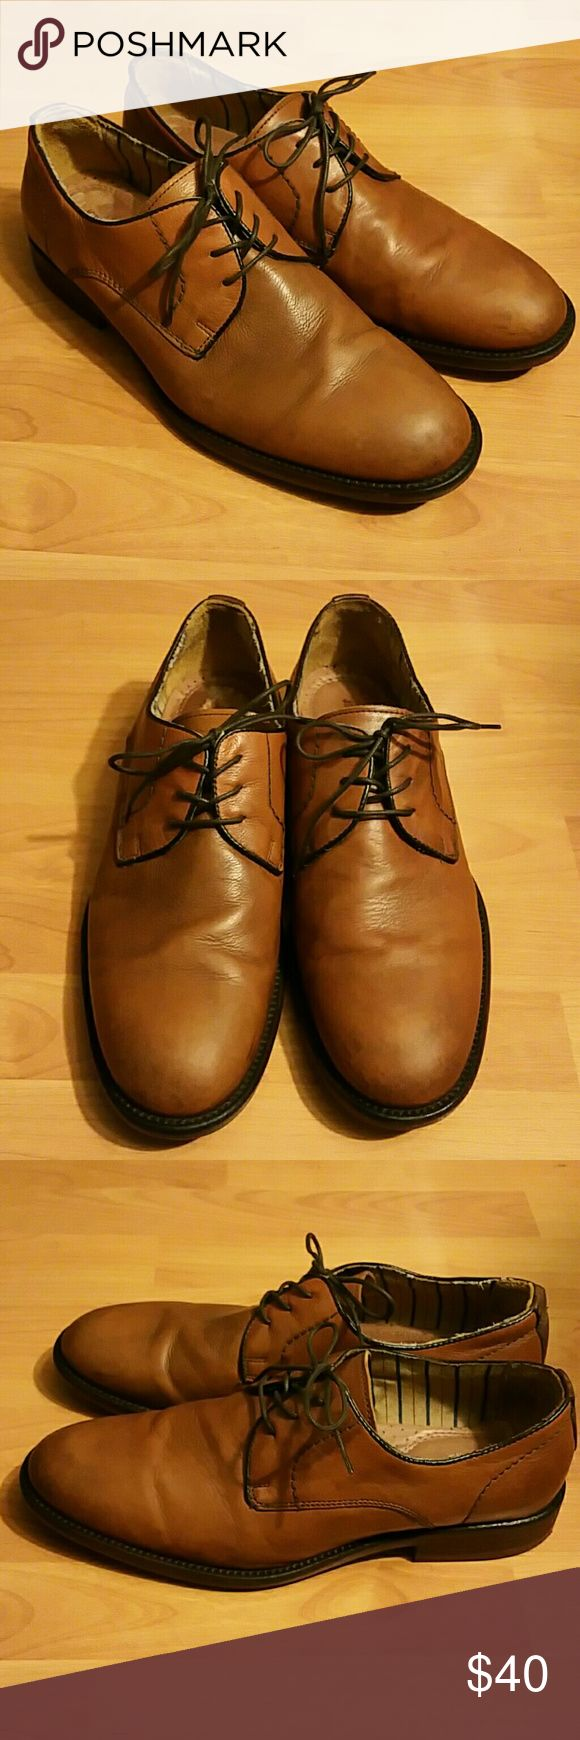 Johnston & Murphy brown oxford shoes Size 10. Good condition. Johnston & Murphy Shoes Oxfords & Derbys